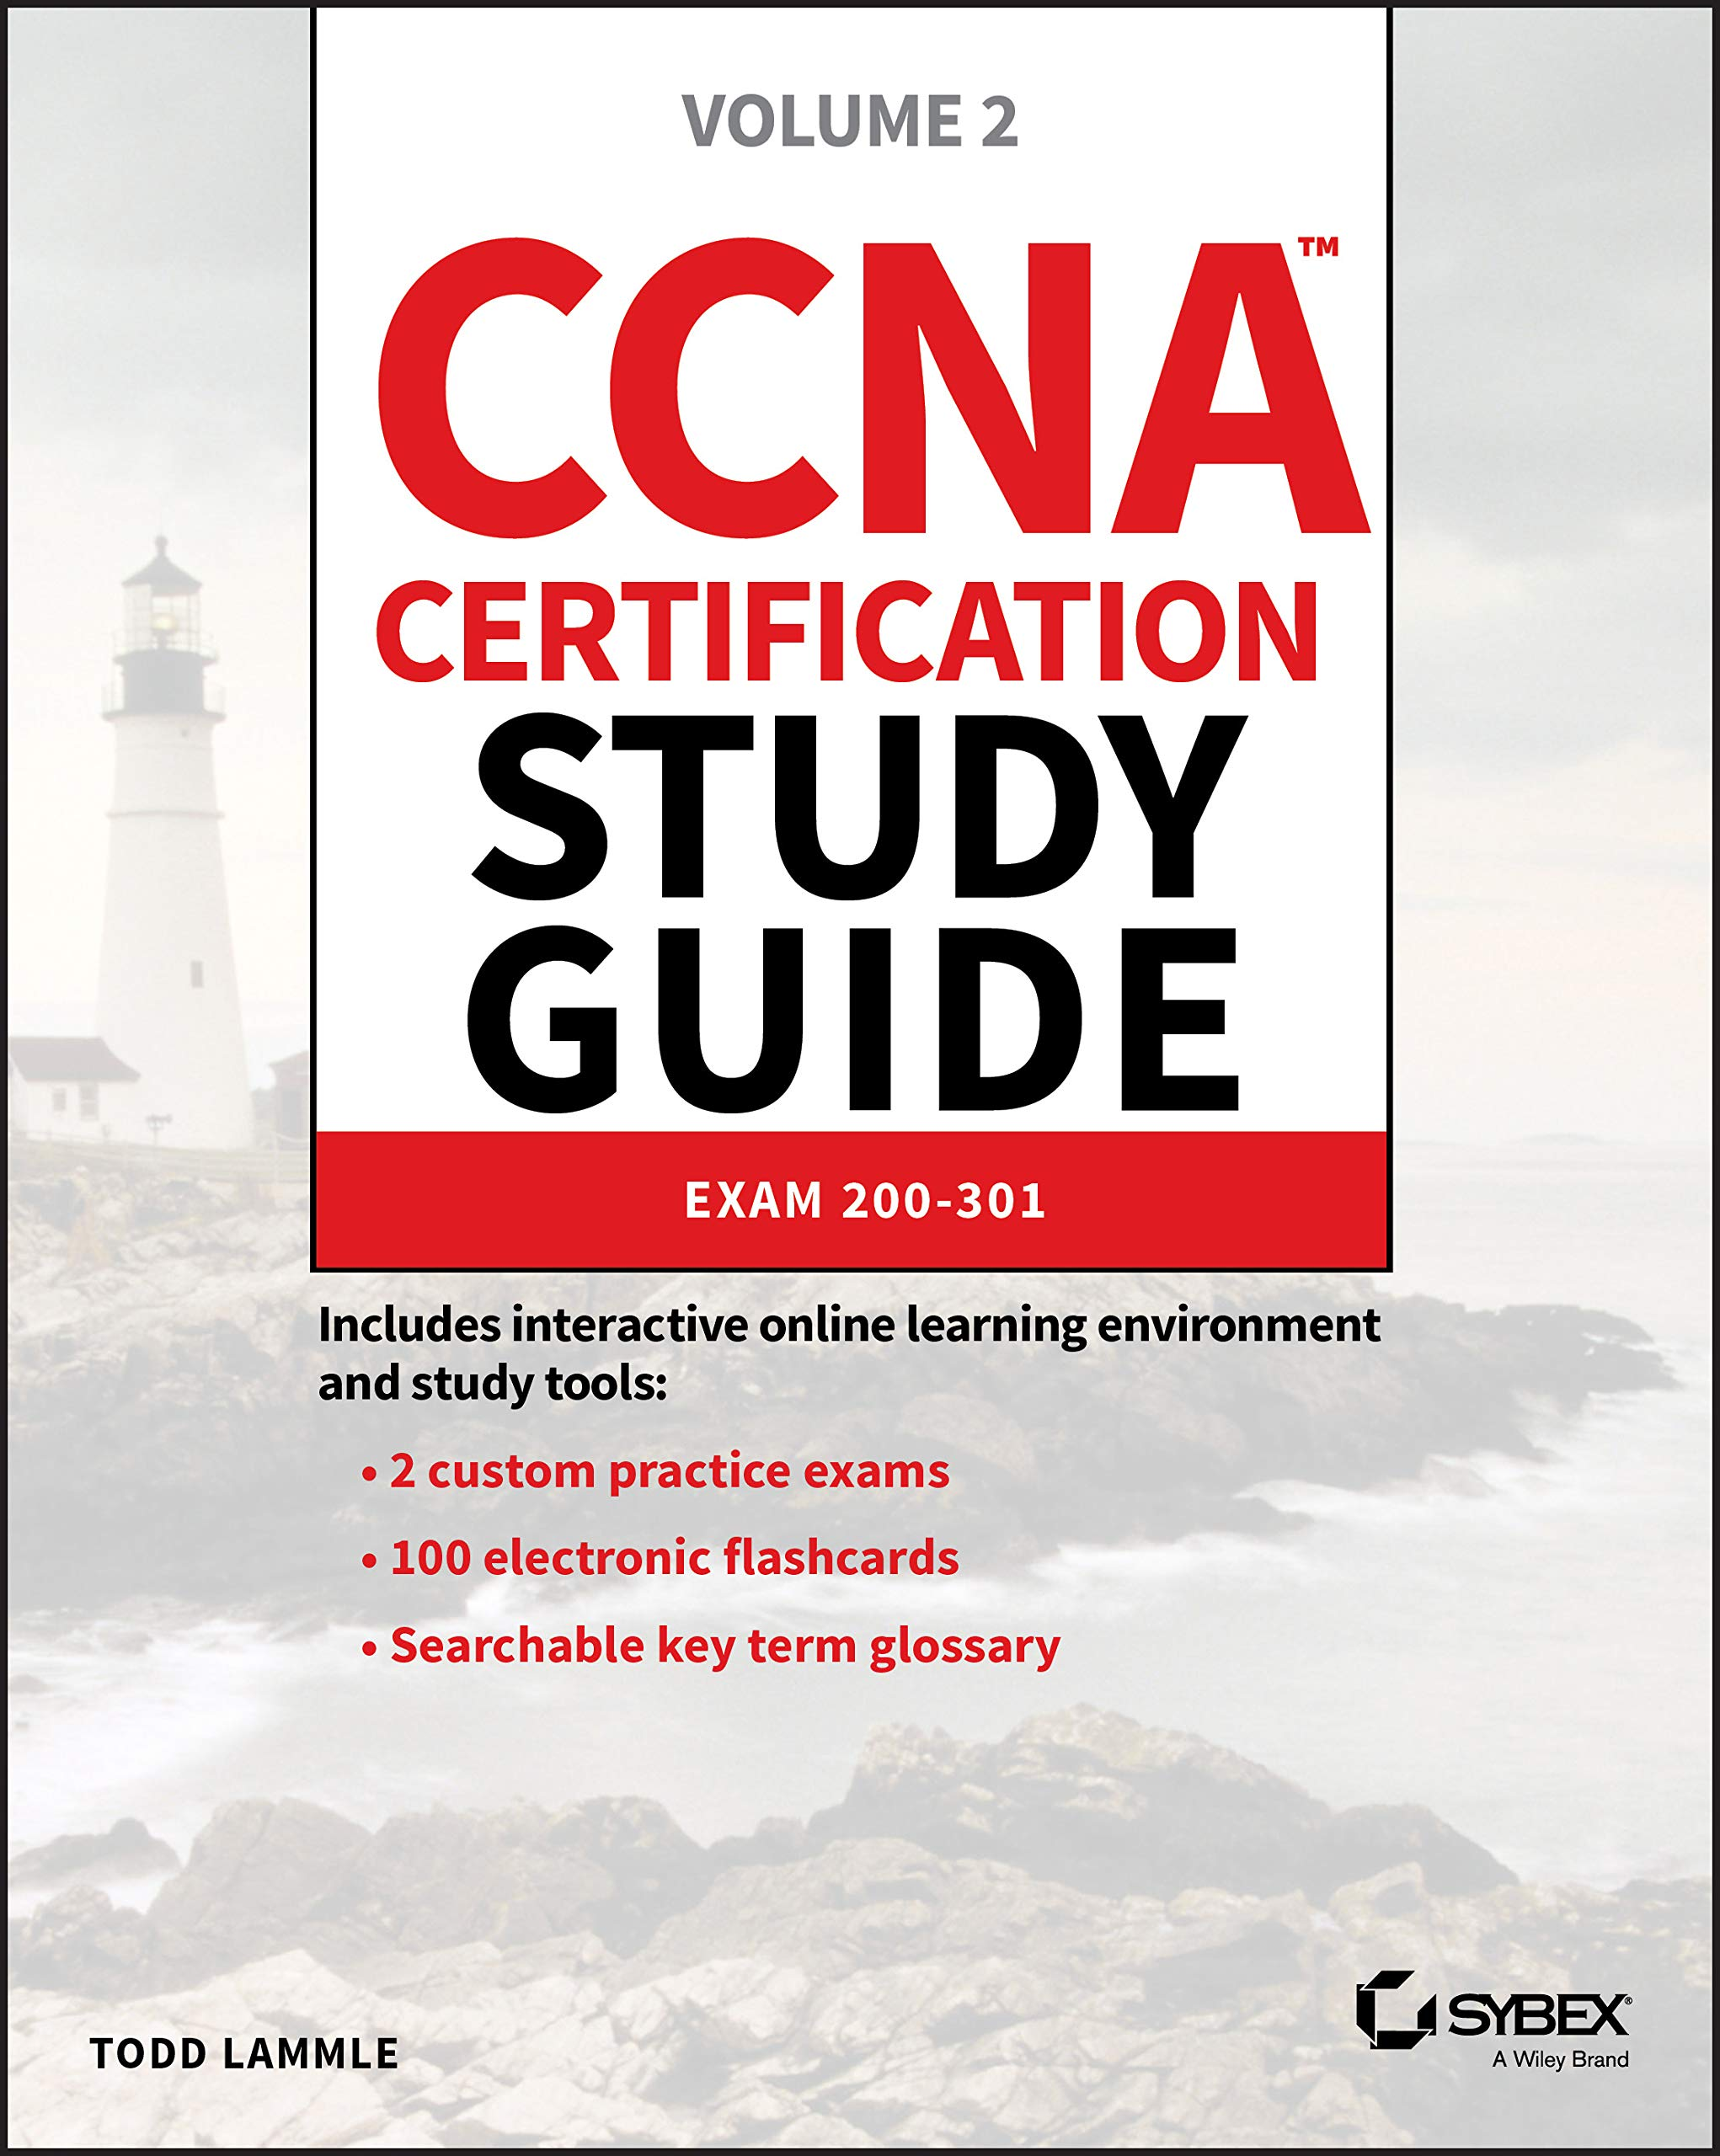 Image OfCCNA Certification Study Guide, Volume 2: Exam 200-301